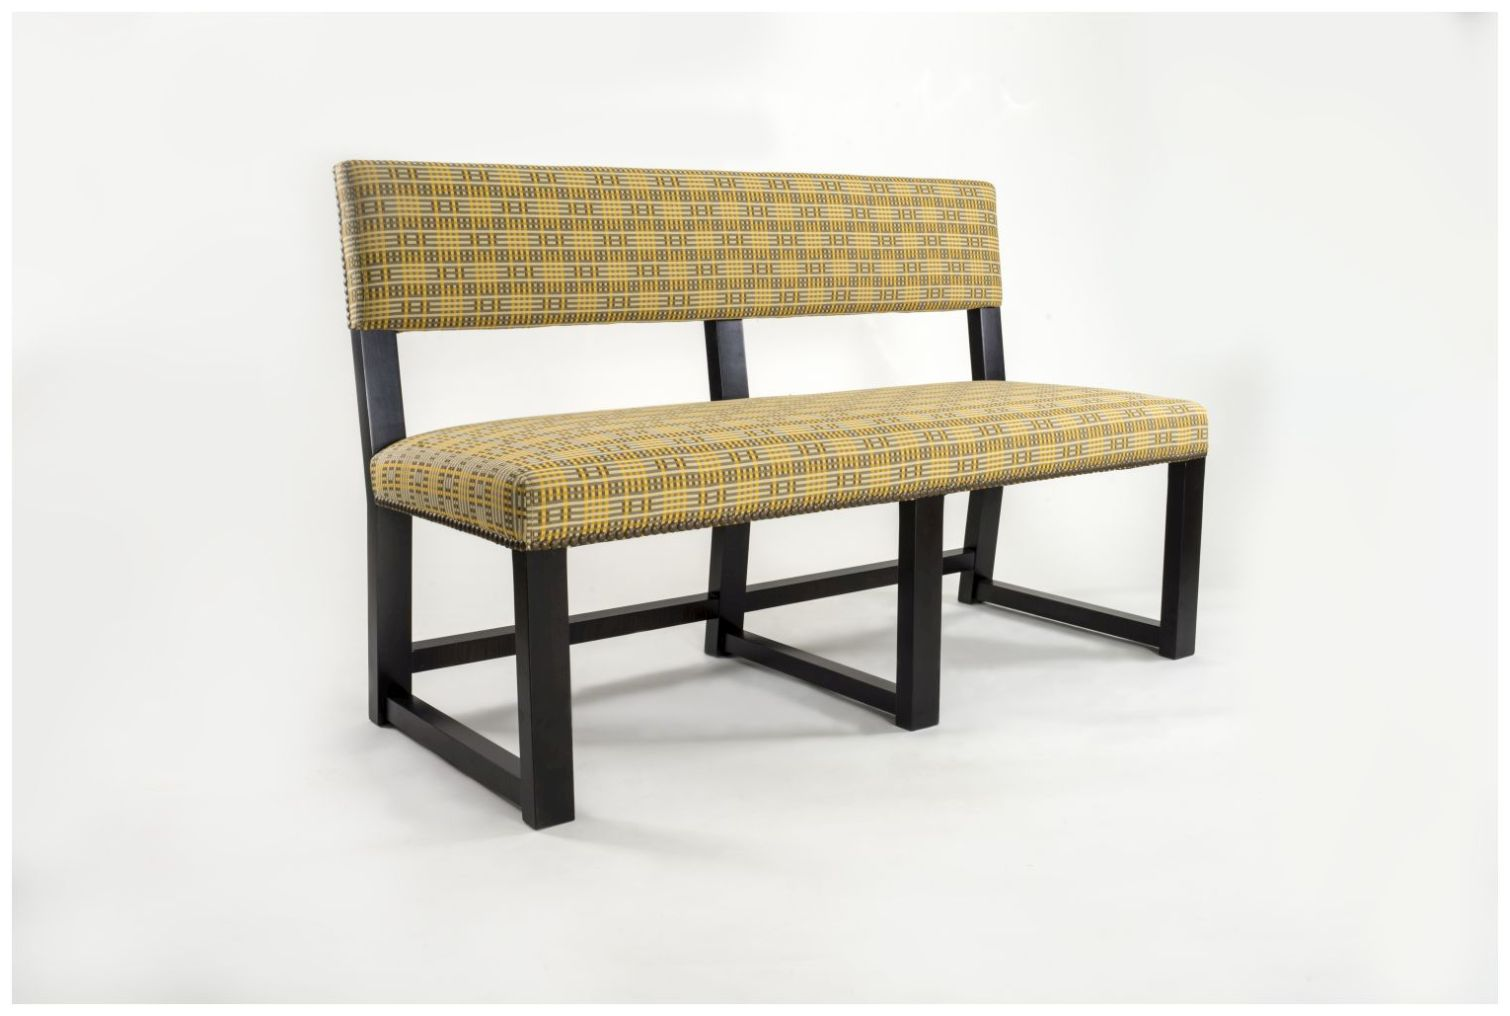 Custom Hotel Bench Seat with Upholstered Back